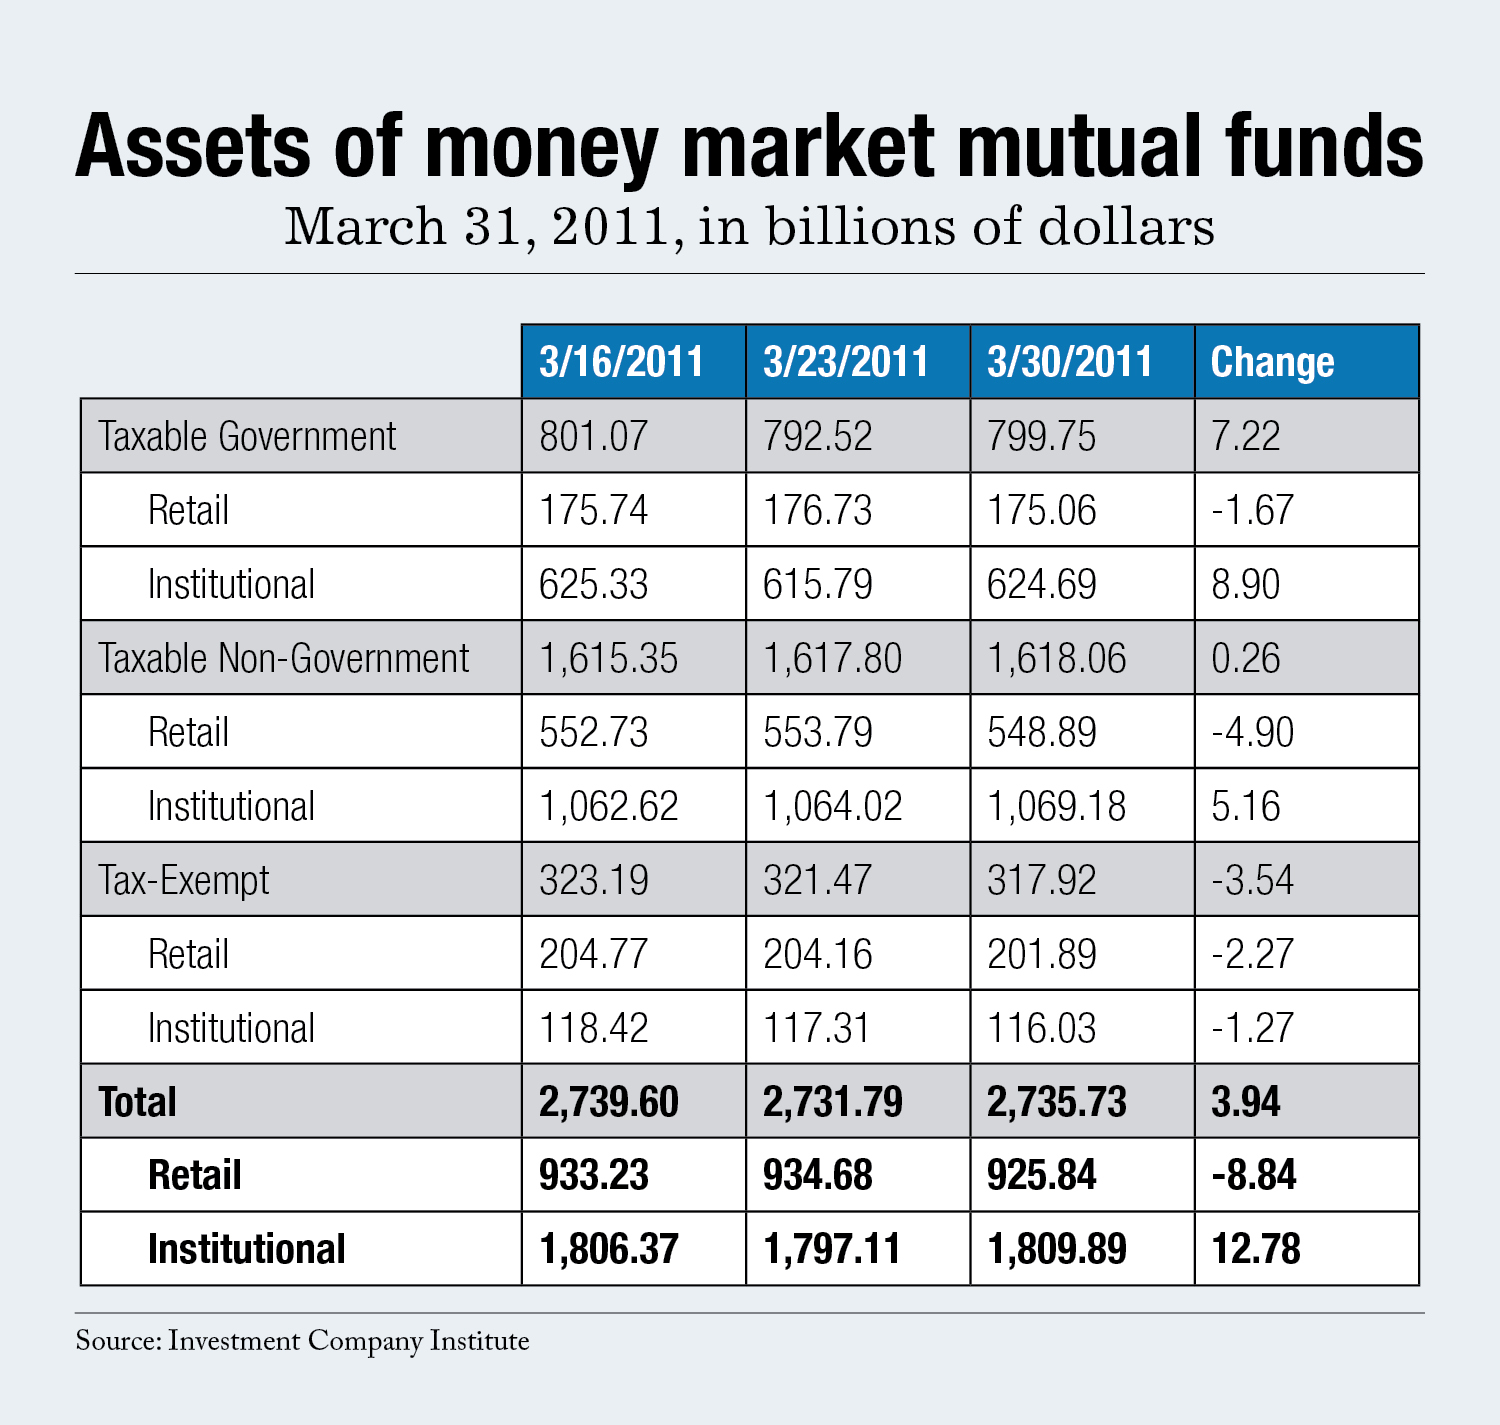 Highest Performing Mutual Fund This Year